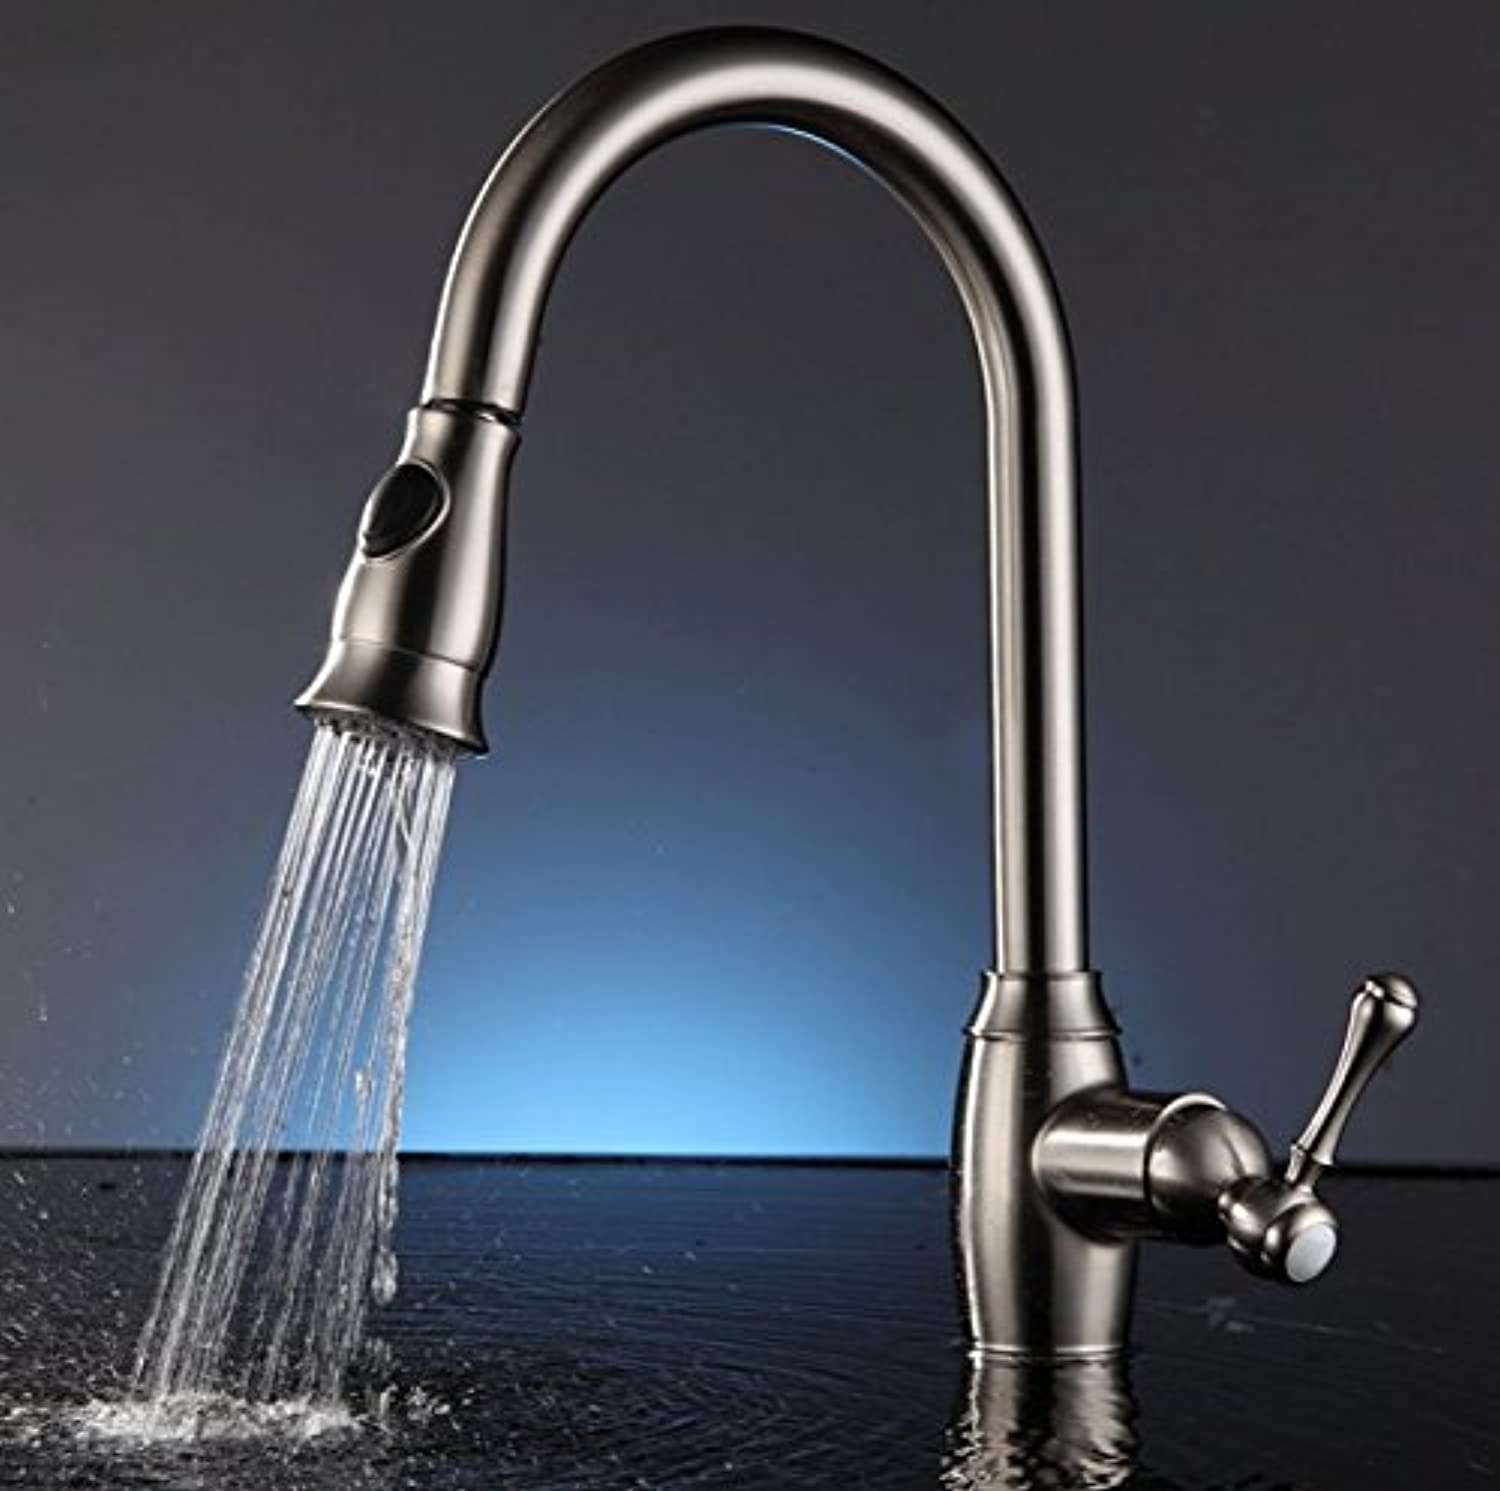 Mangeoo Faucet All Copper Nickel Wire Drawing Kitchen Sink, Pull Faucet, Hot And Cold Water Mixing, redating Vegetable Basin Faucet.